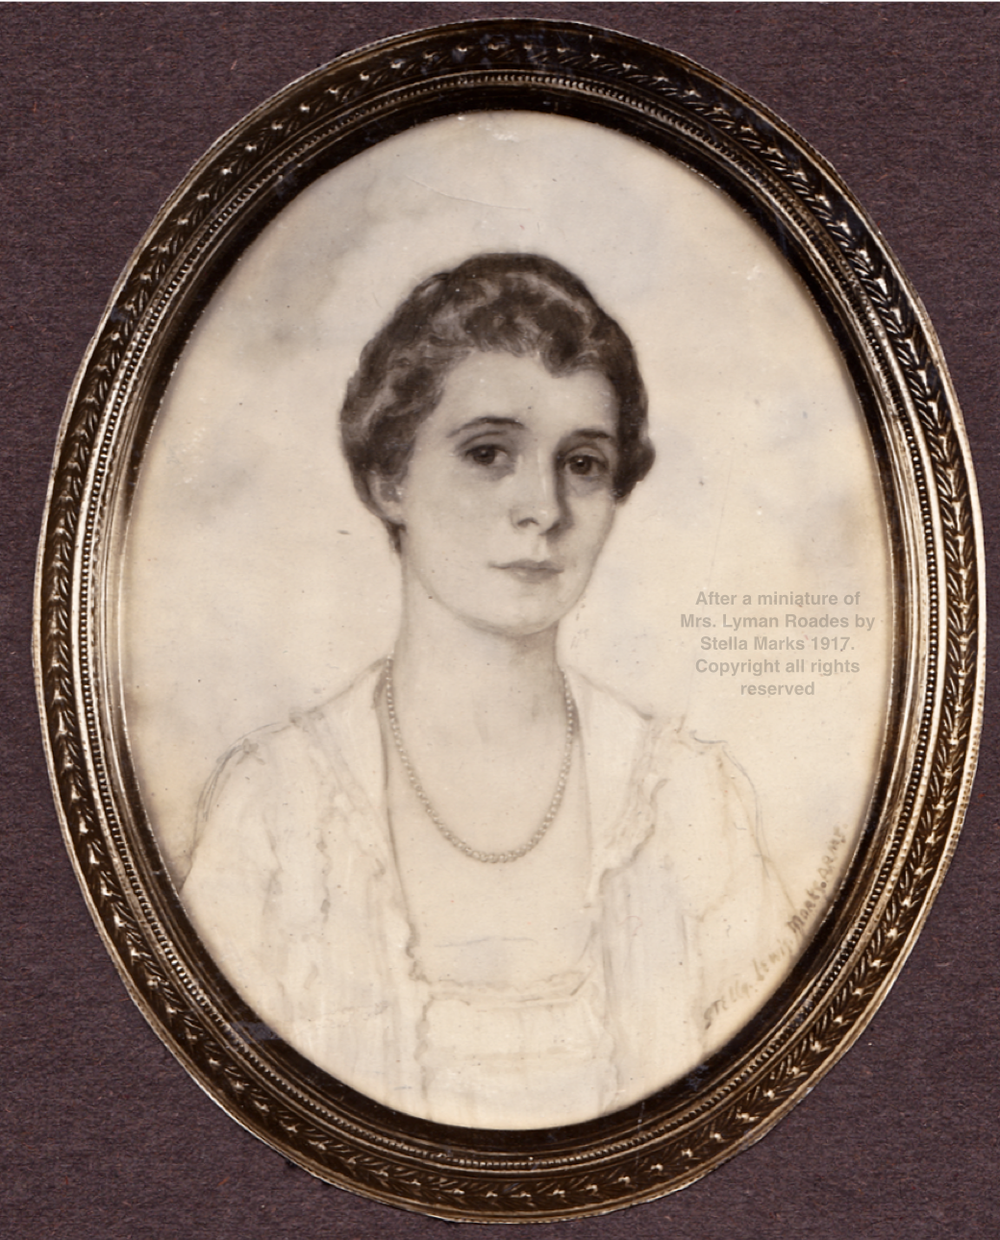 After a miniature of Mrs. Lyman Roades by Stella Marks 1917. Copyright all rights reserved